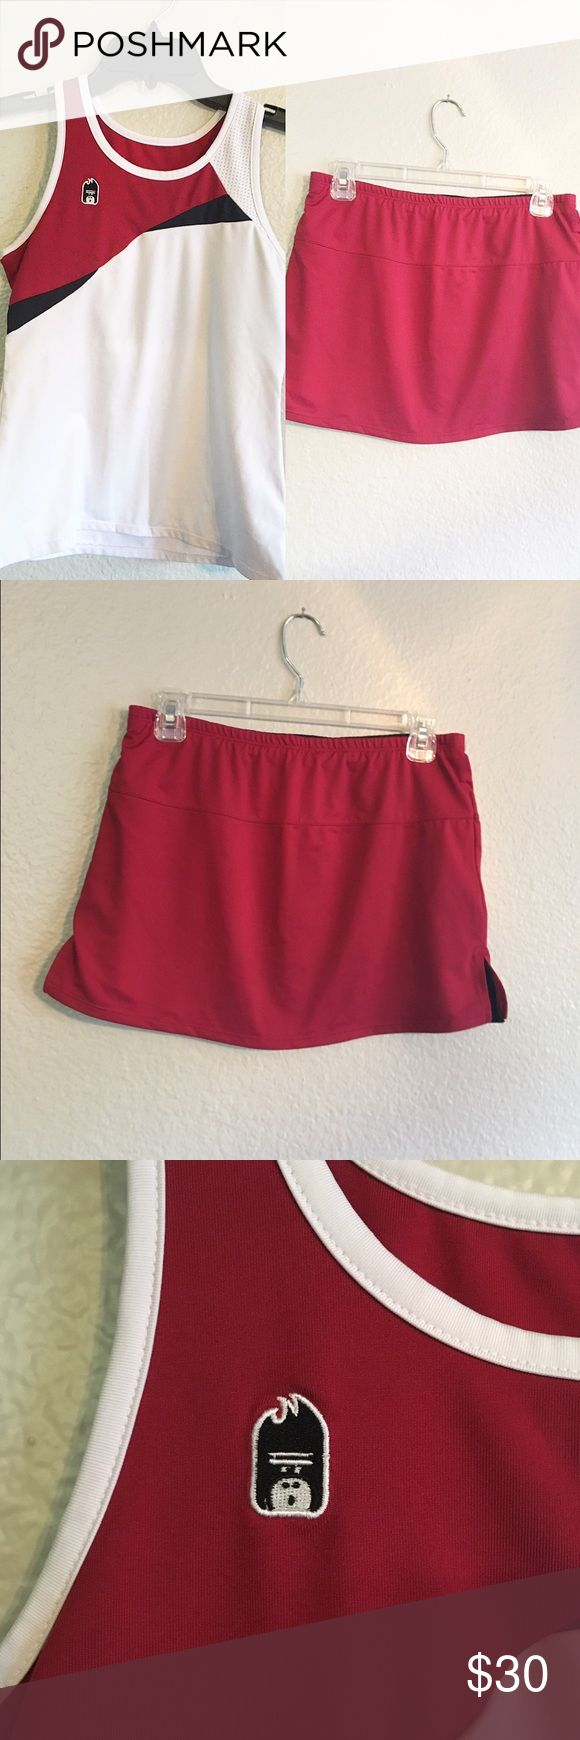 Tennis Uniform Great condition. Tennis uniform SET. The skirt is reversible (black and red). The red is a mix between a red and maroon. The top is S, the bottom is S/M. Other